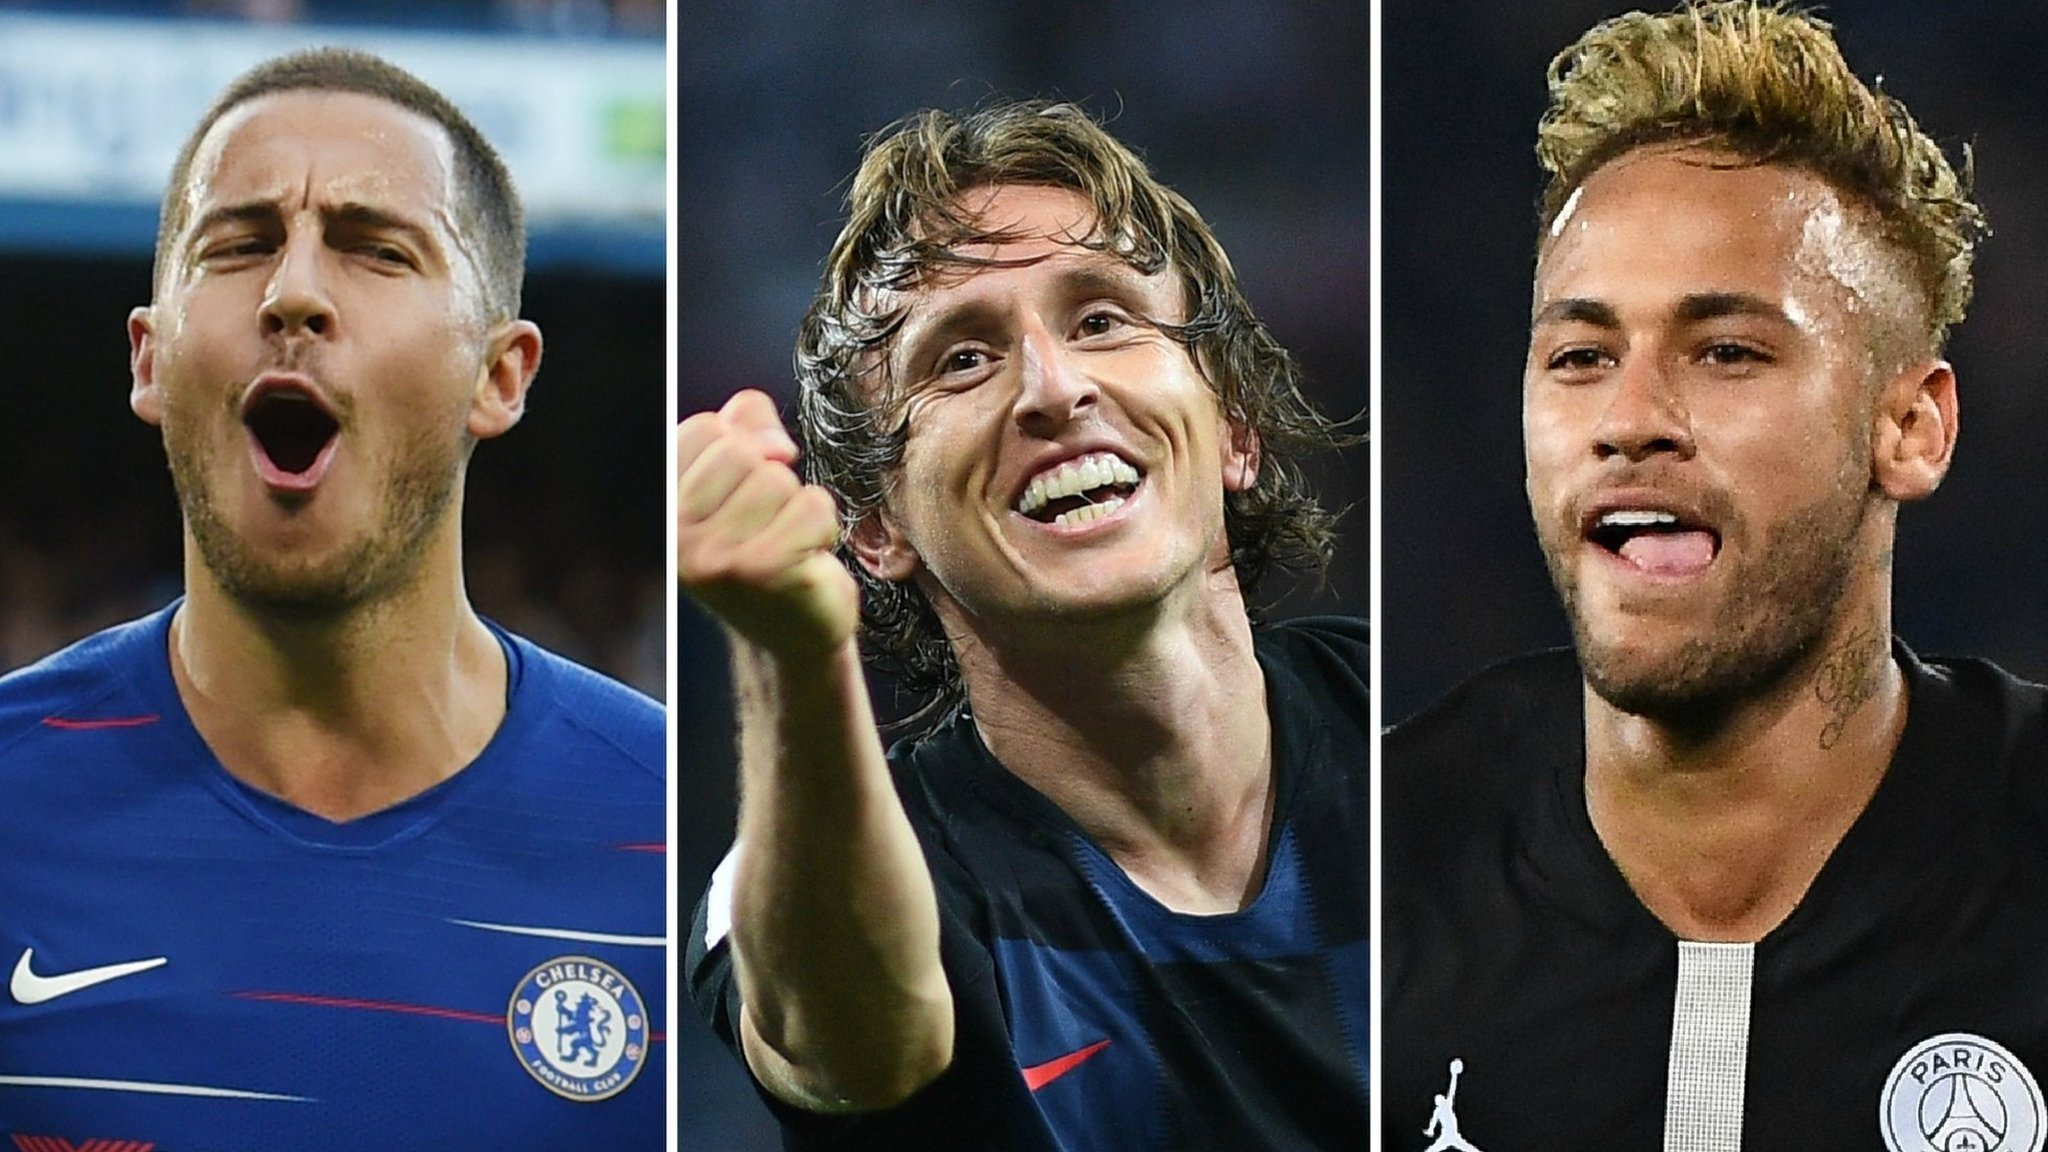 Ballon d'Or: Who is the third-best player in the world?